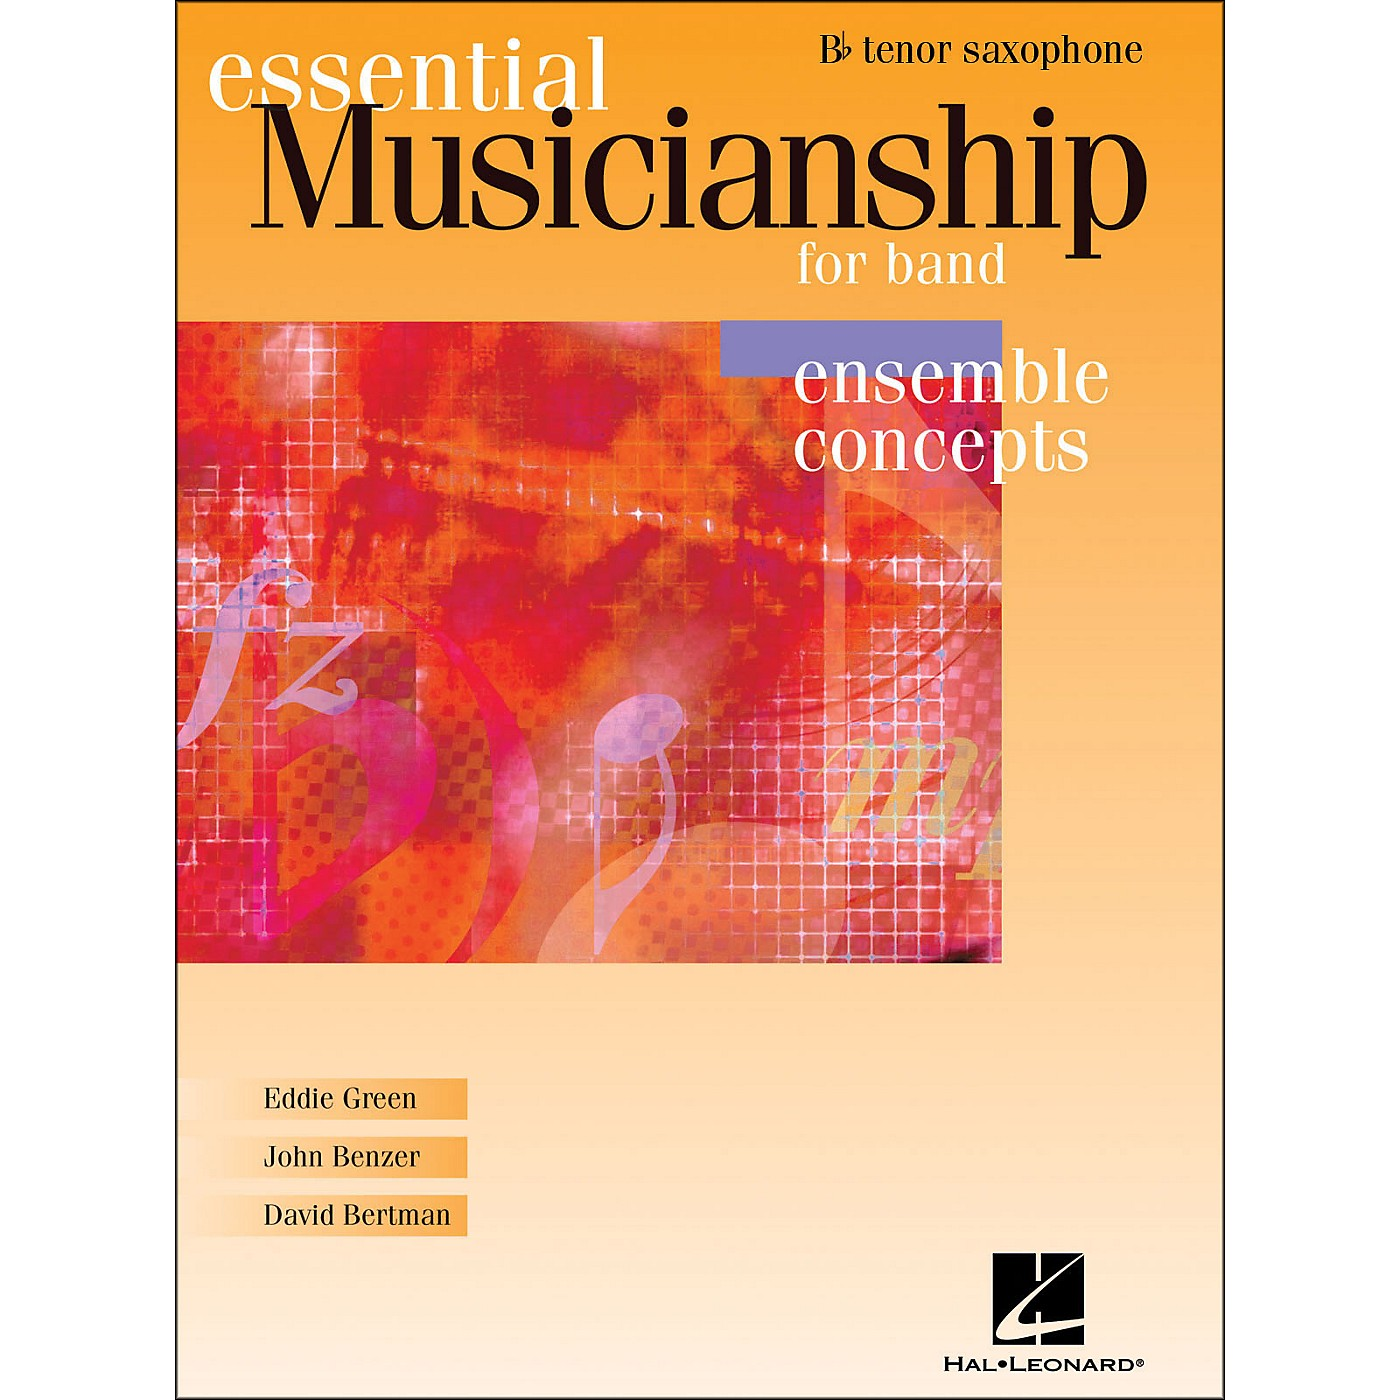 Hal Leonard Essential Musicianship for Band - Ensemble Concepts Tenor Saxophone thumbnail